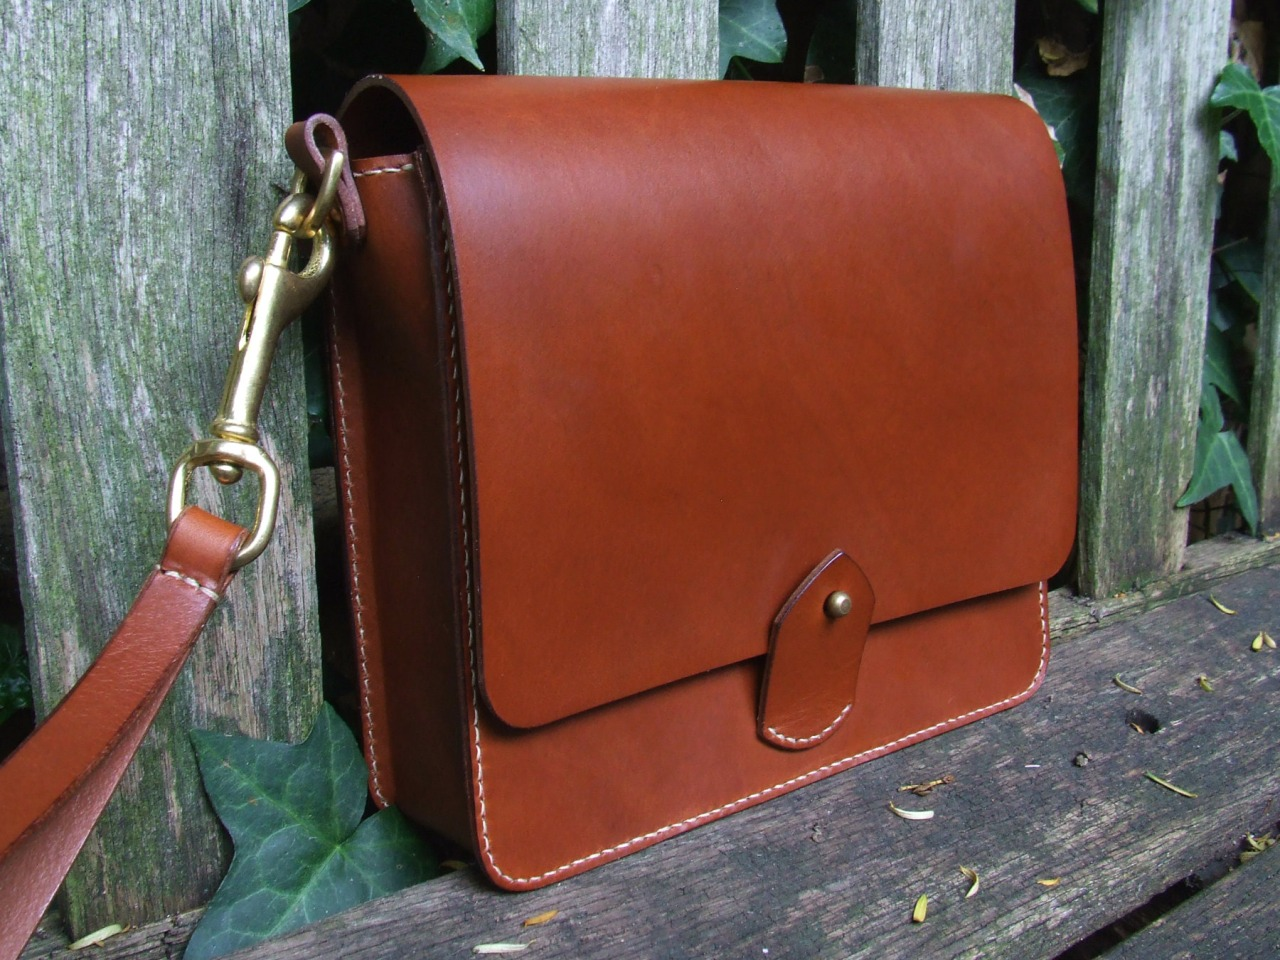 Pochette for Oliver    made out of dark brown vegetable tanned leather   solid brass fittings   hand loop attached to the bag by copper rivet   red suede lining   solid brass zip